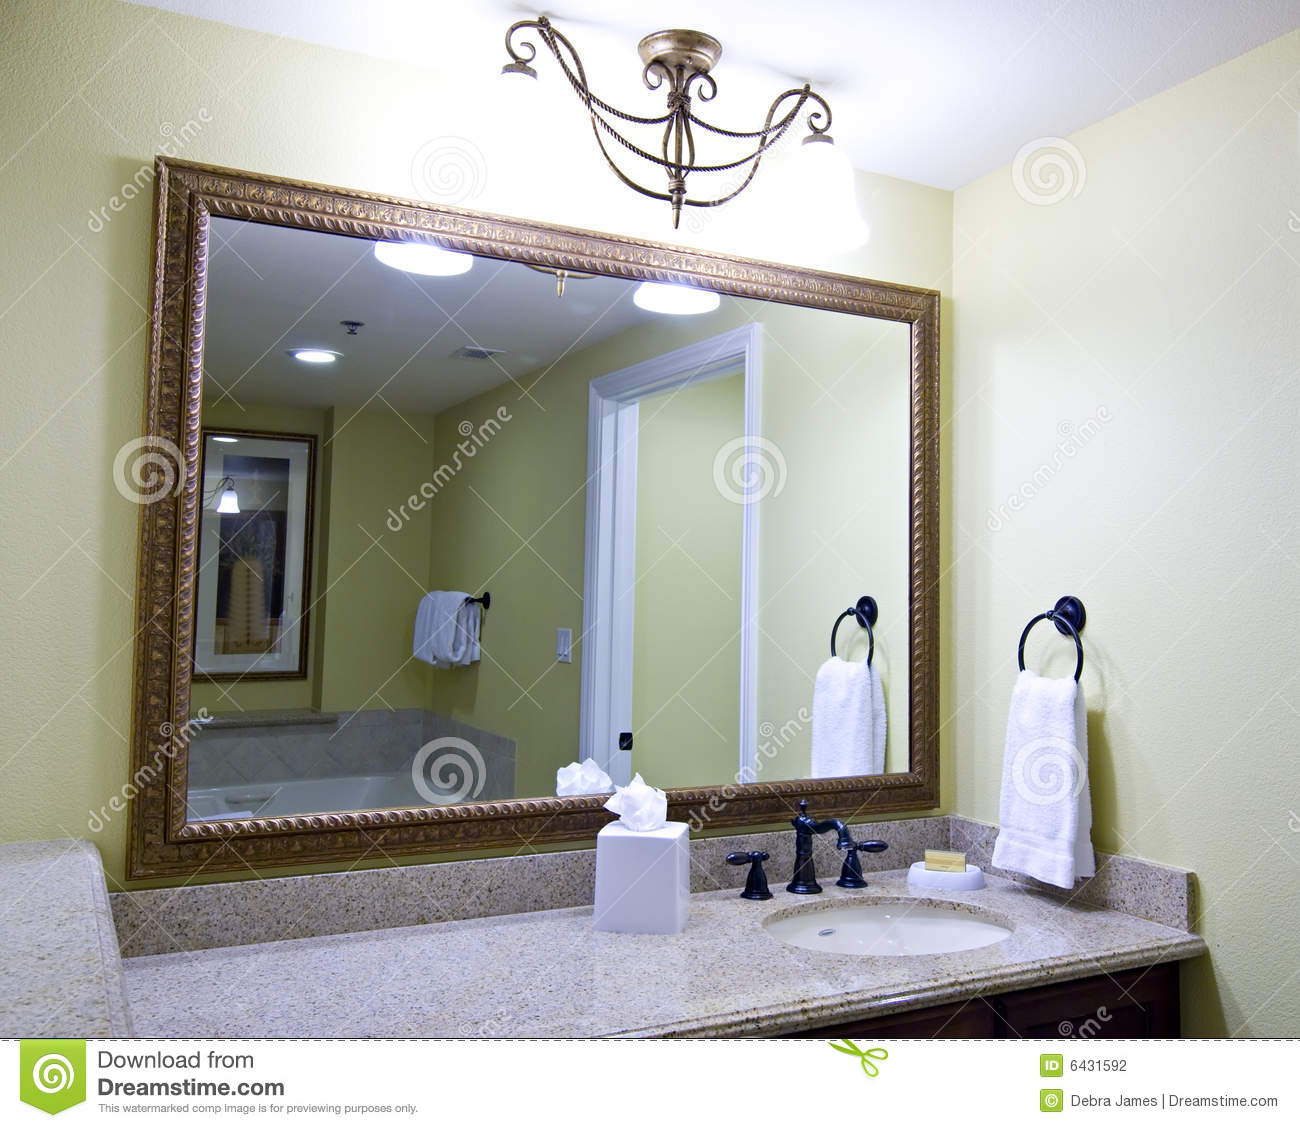 How to frame a bathroom mirror with molding